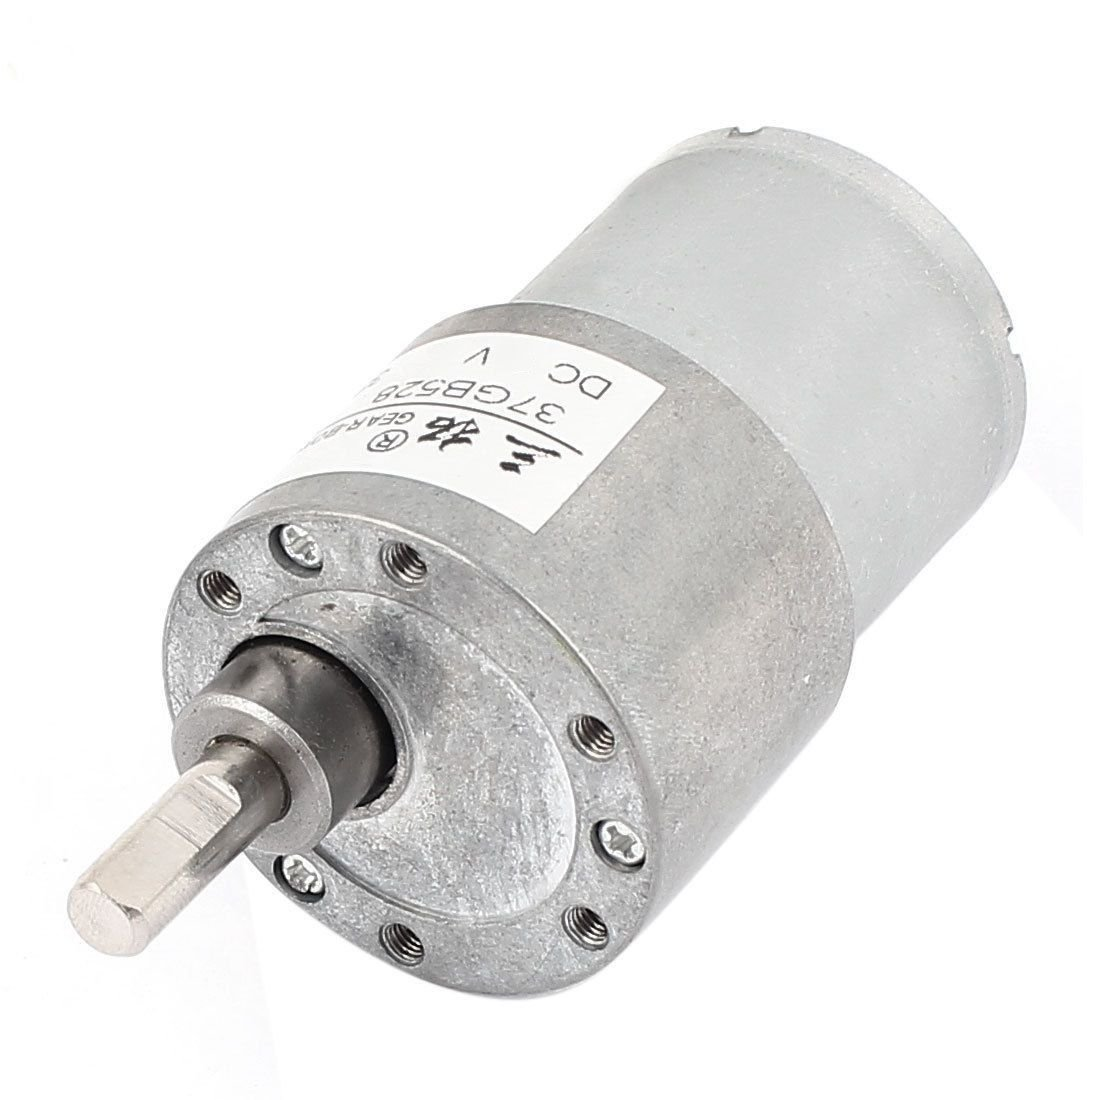 DC 24V 34RPM 0.15A 3.6KG.cm DC Gear Box Reducer Variable Speed Motor Reversible